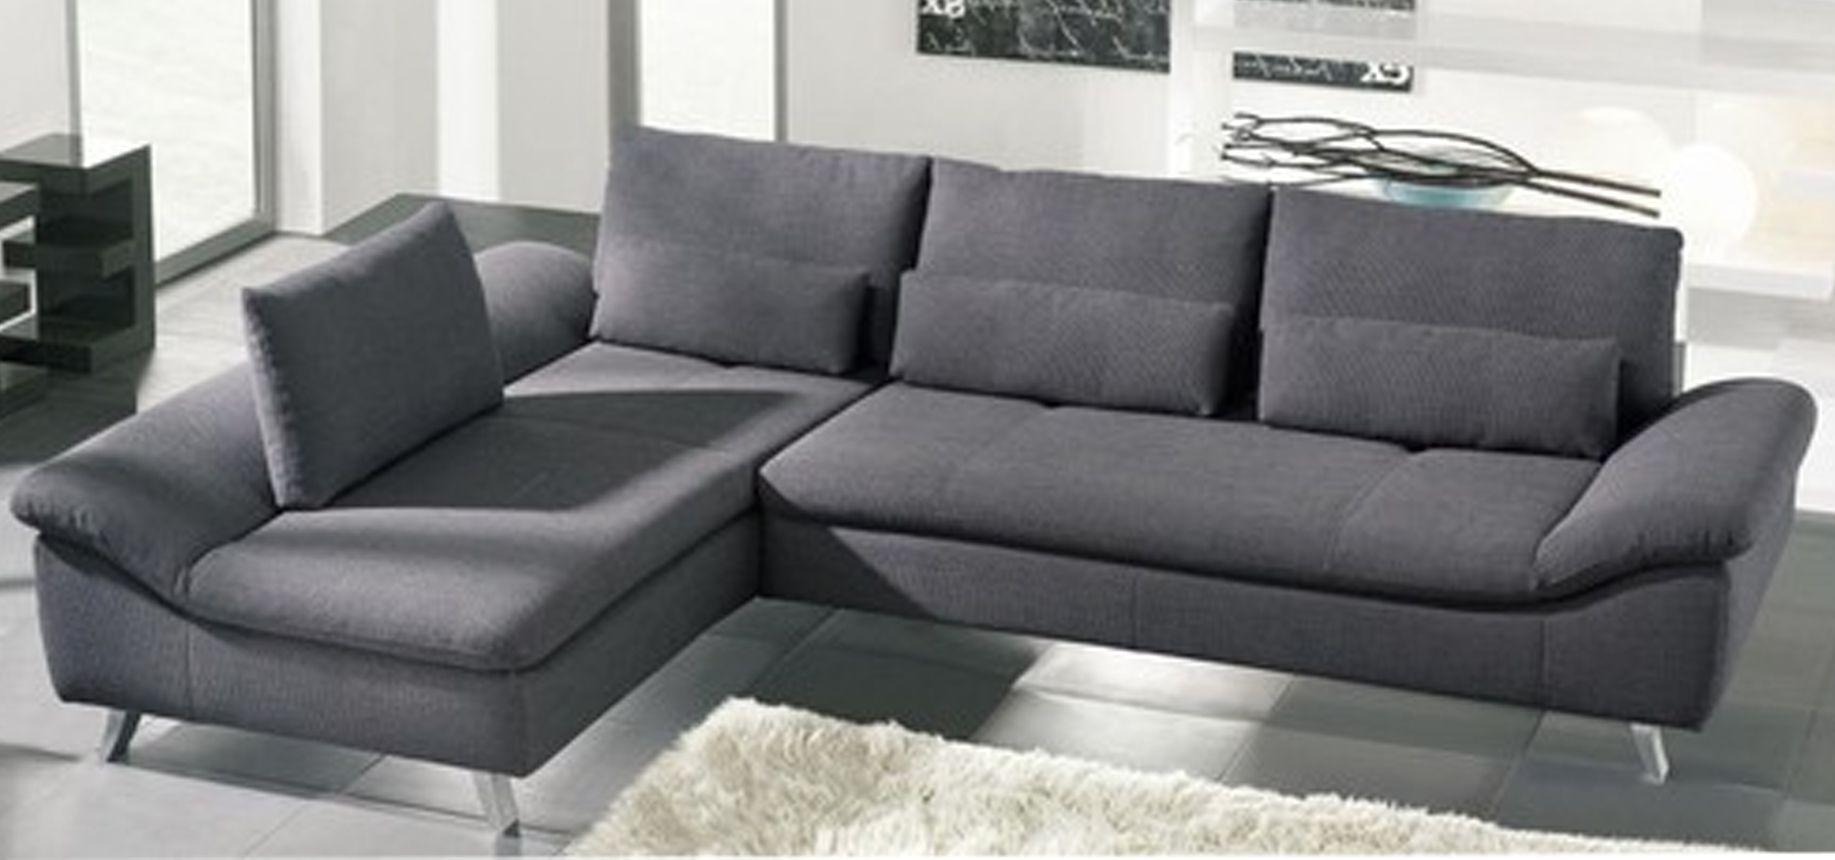 Marvelous-Grey-Schillig-Sofa-Minimalist-Living-Room-Cream-rug.jpg ...